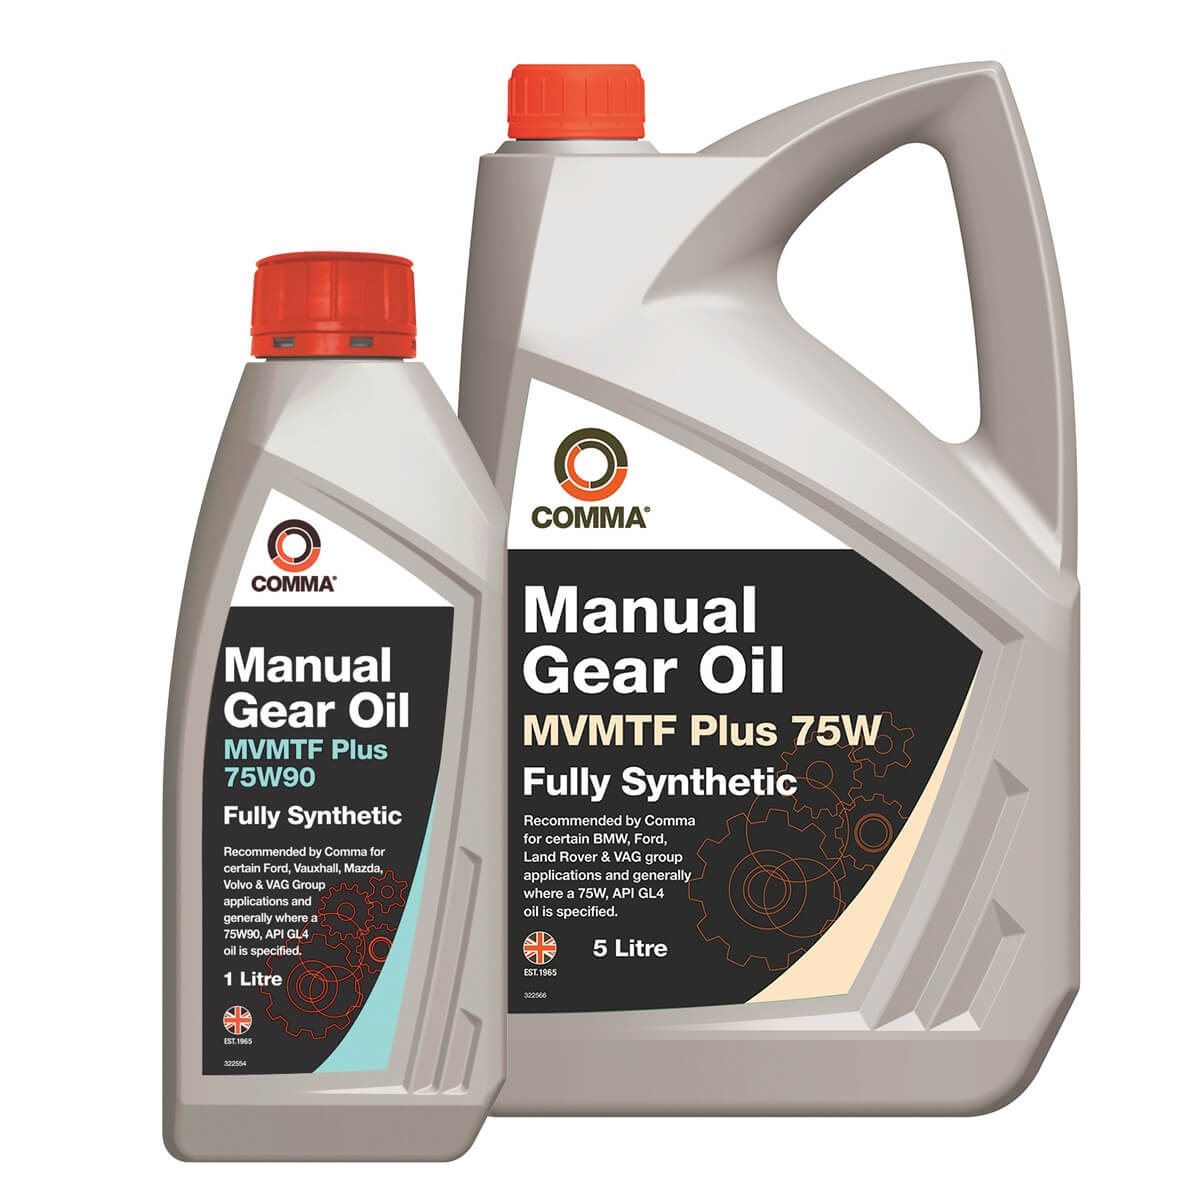 HONDA BEAT Manual Transmission Oil